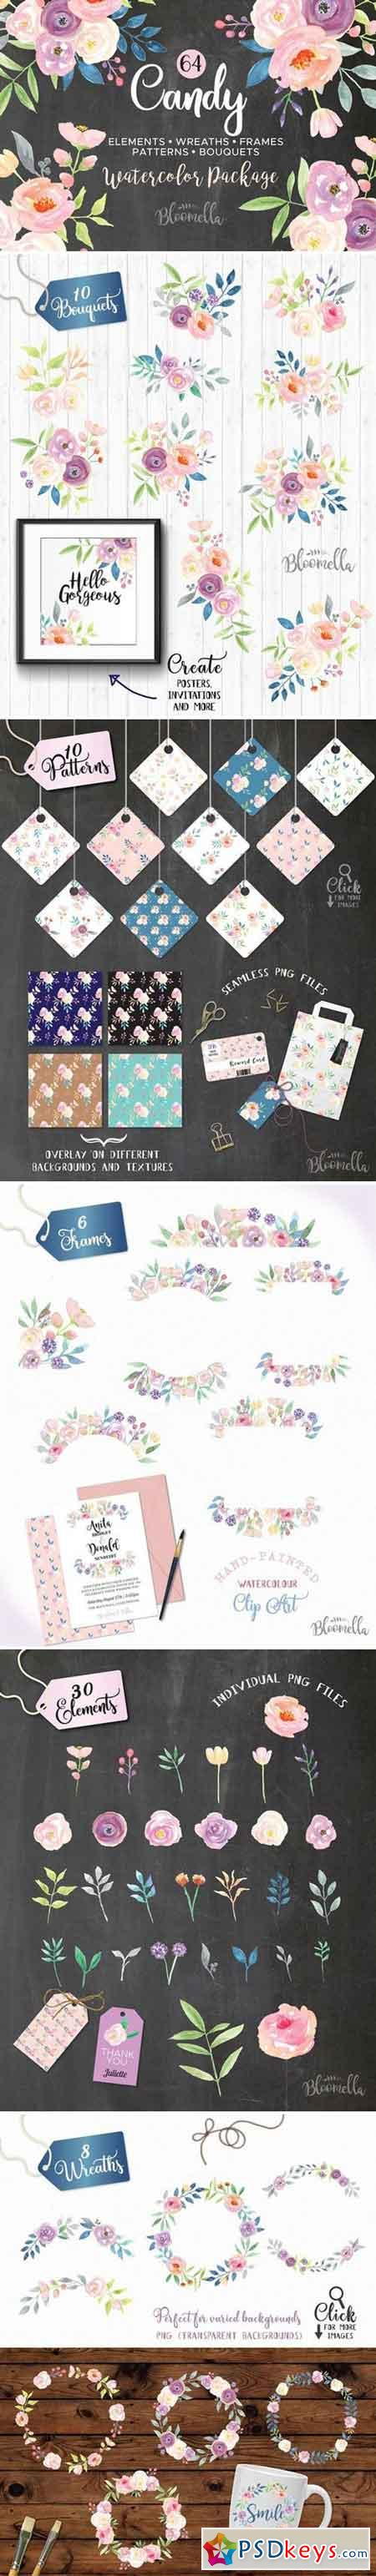 Candy Pastel Watercolor Flower Pack 2227773